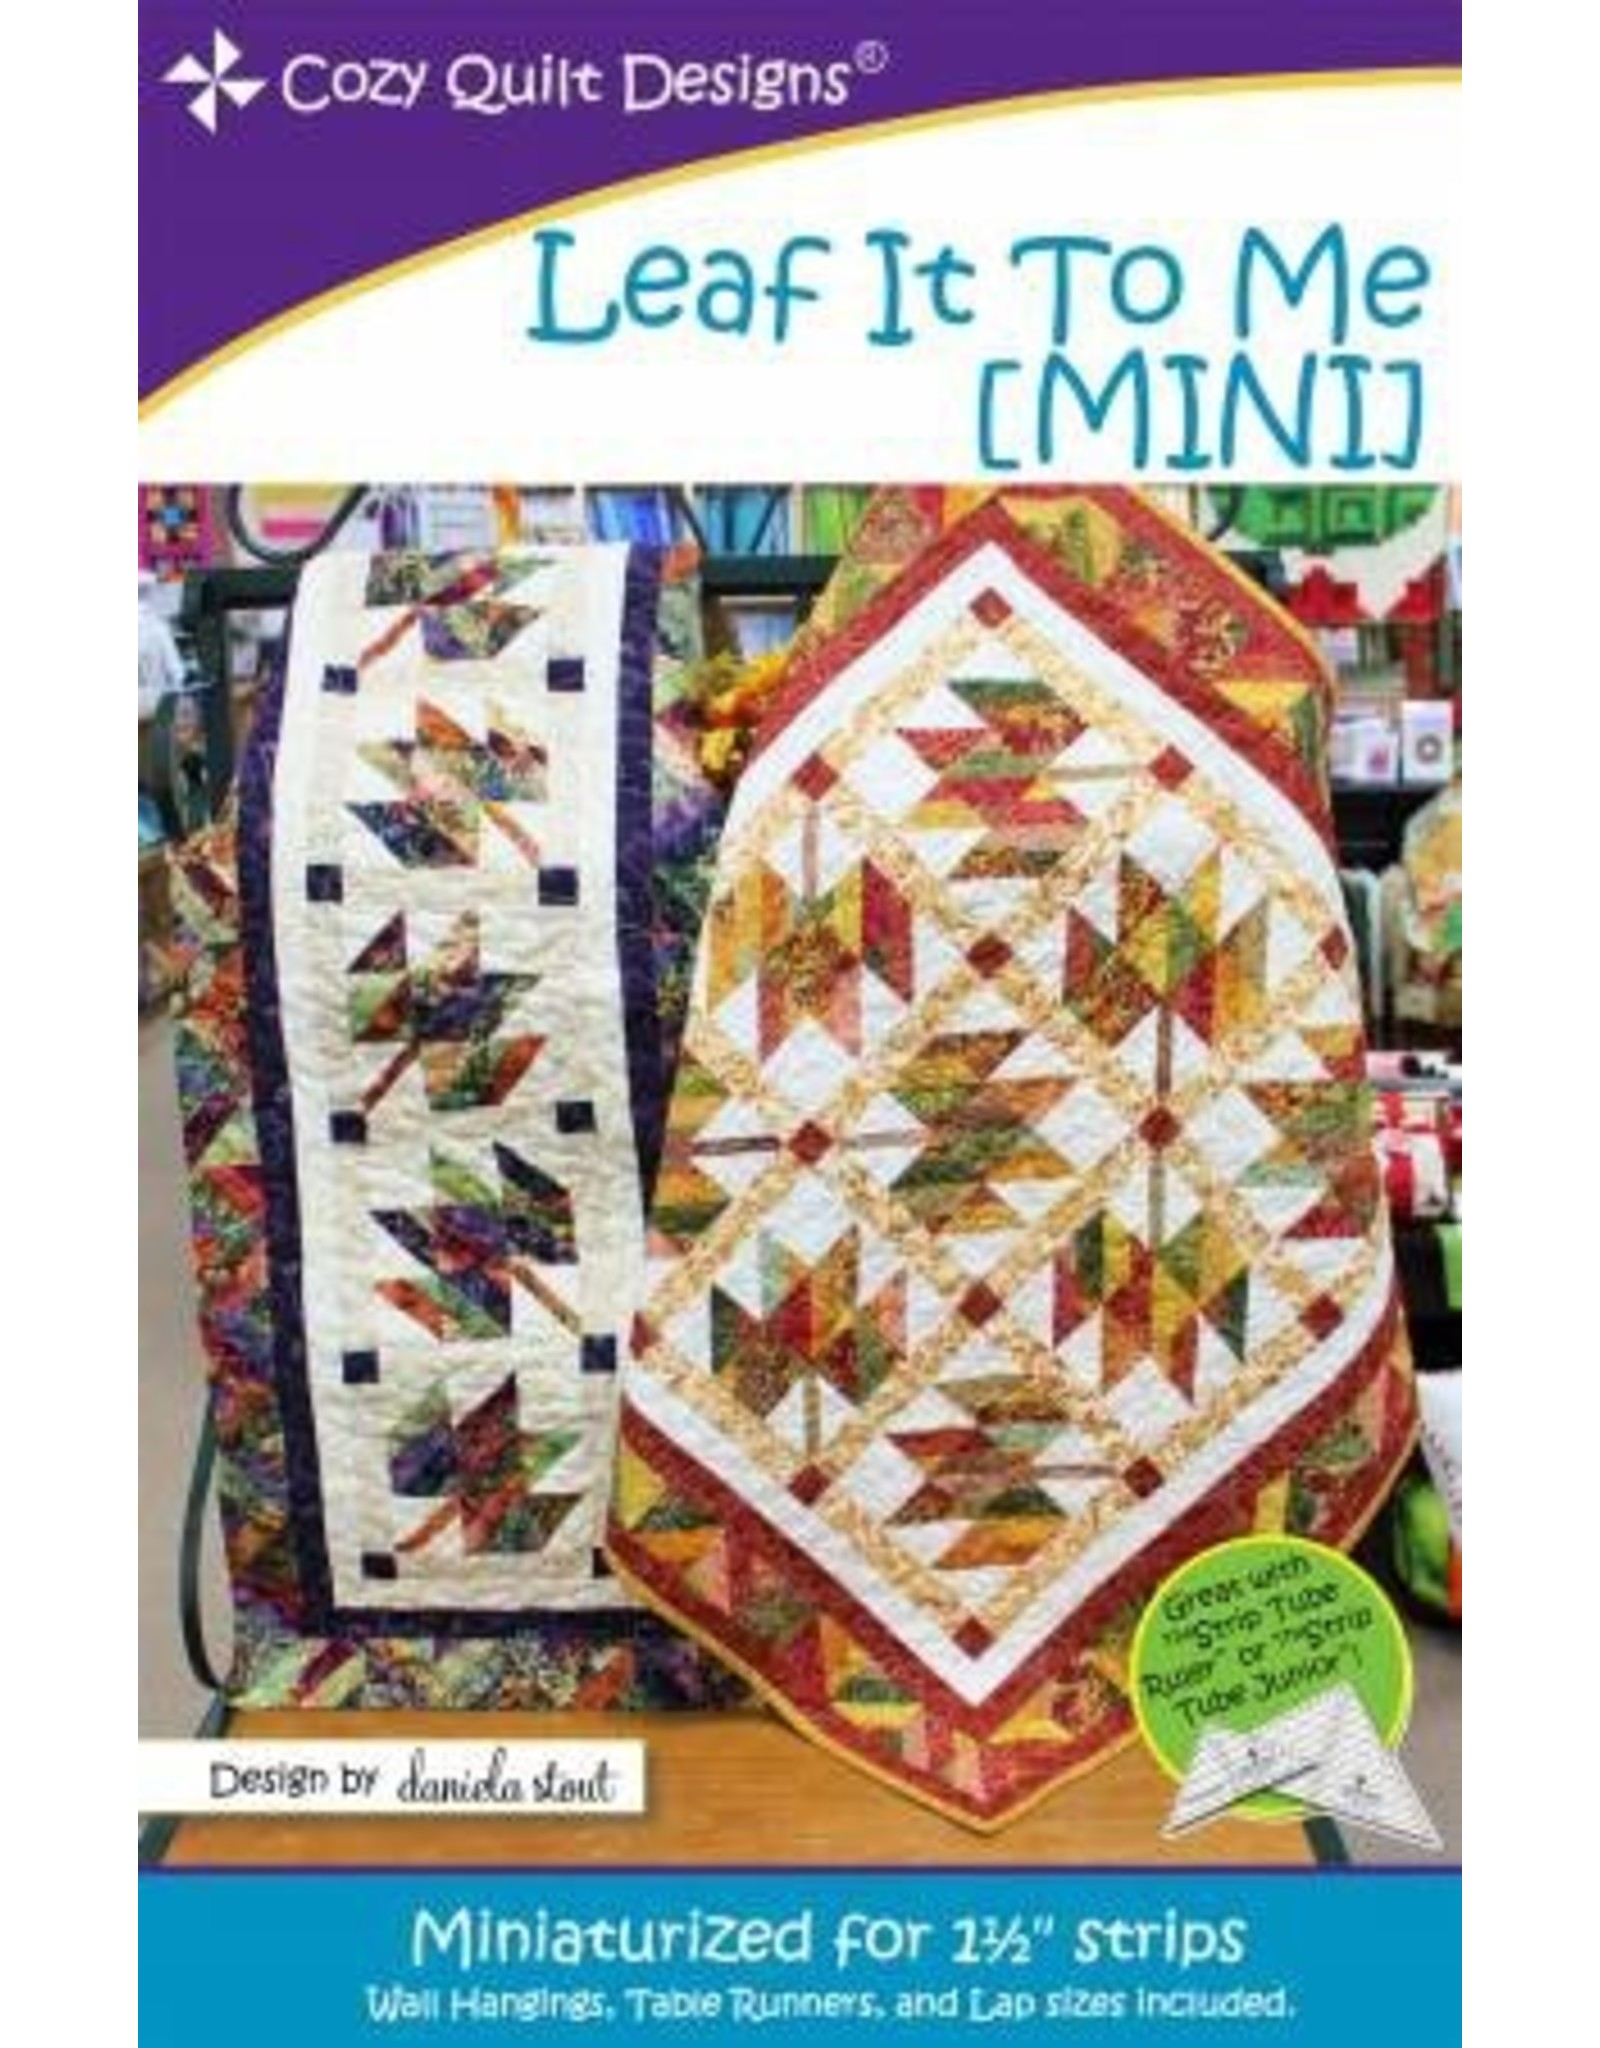 Leaf It To Me (Mini) Pattern